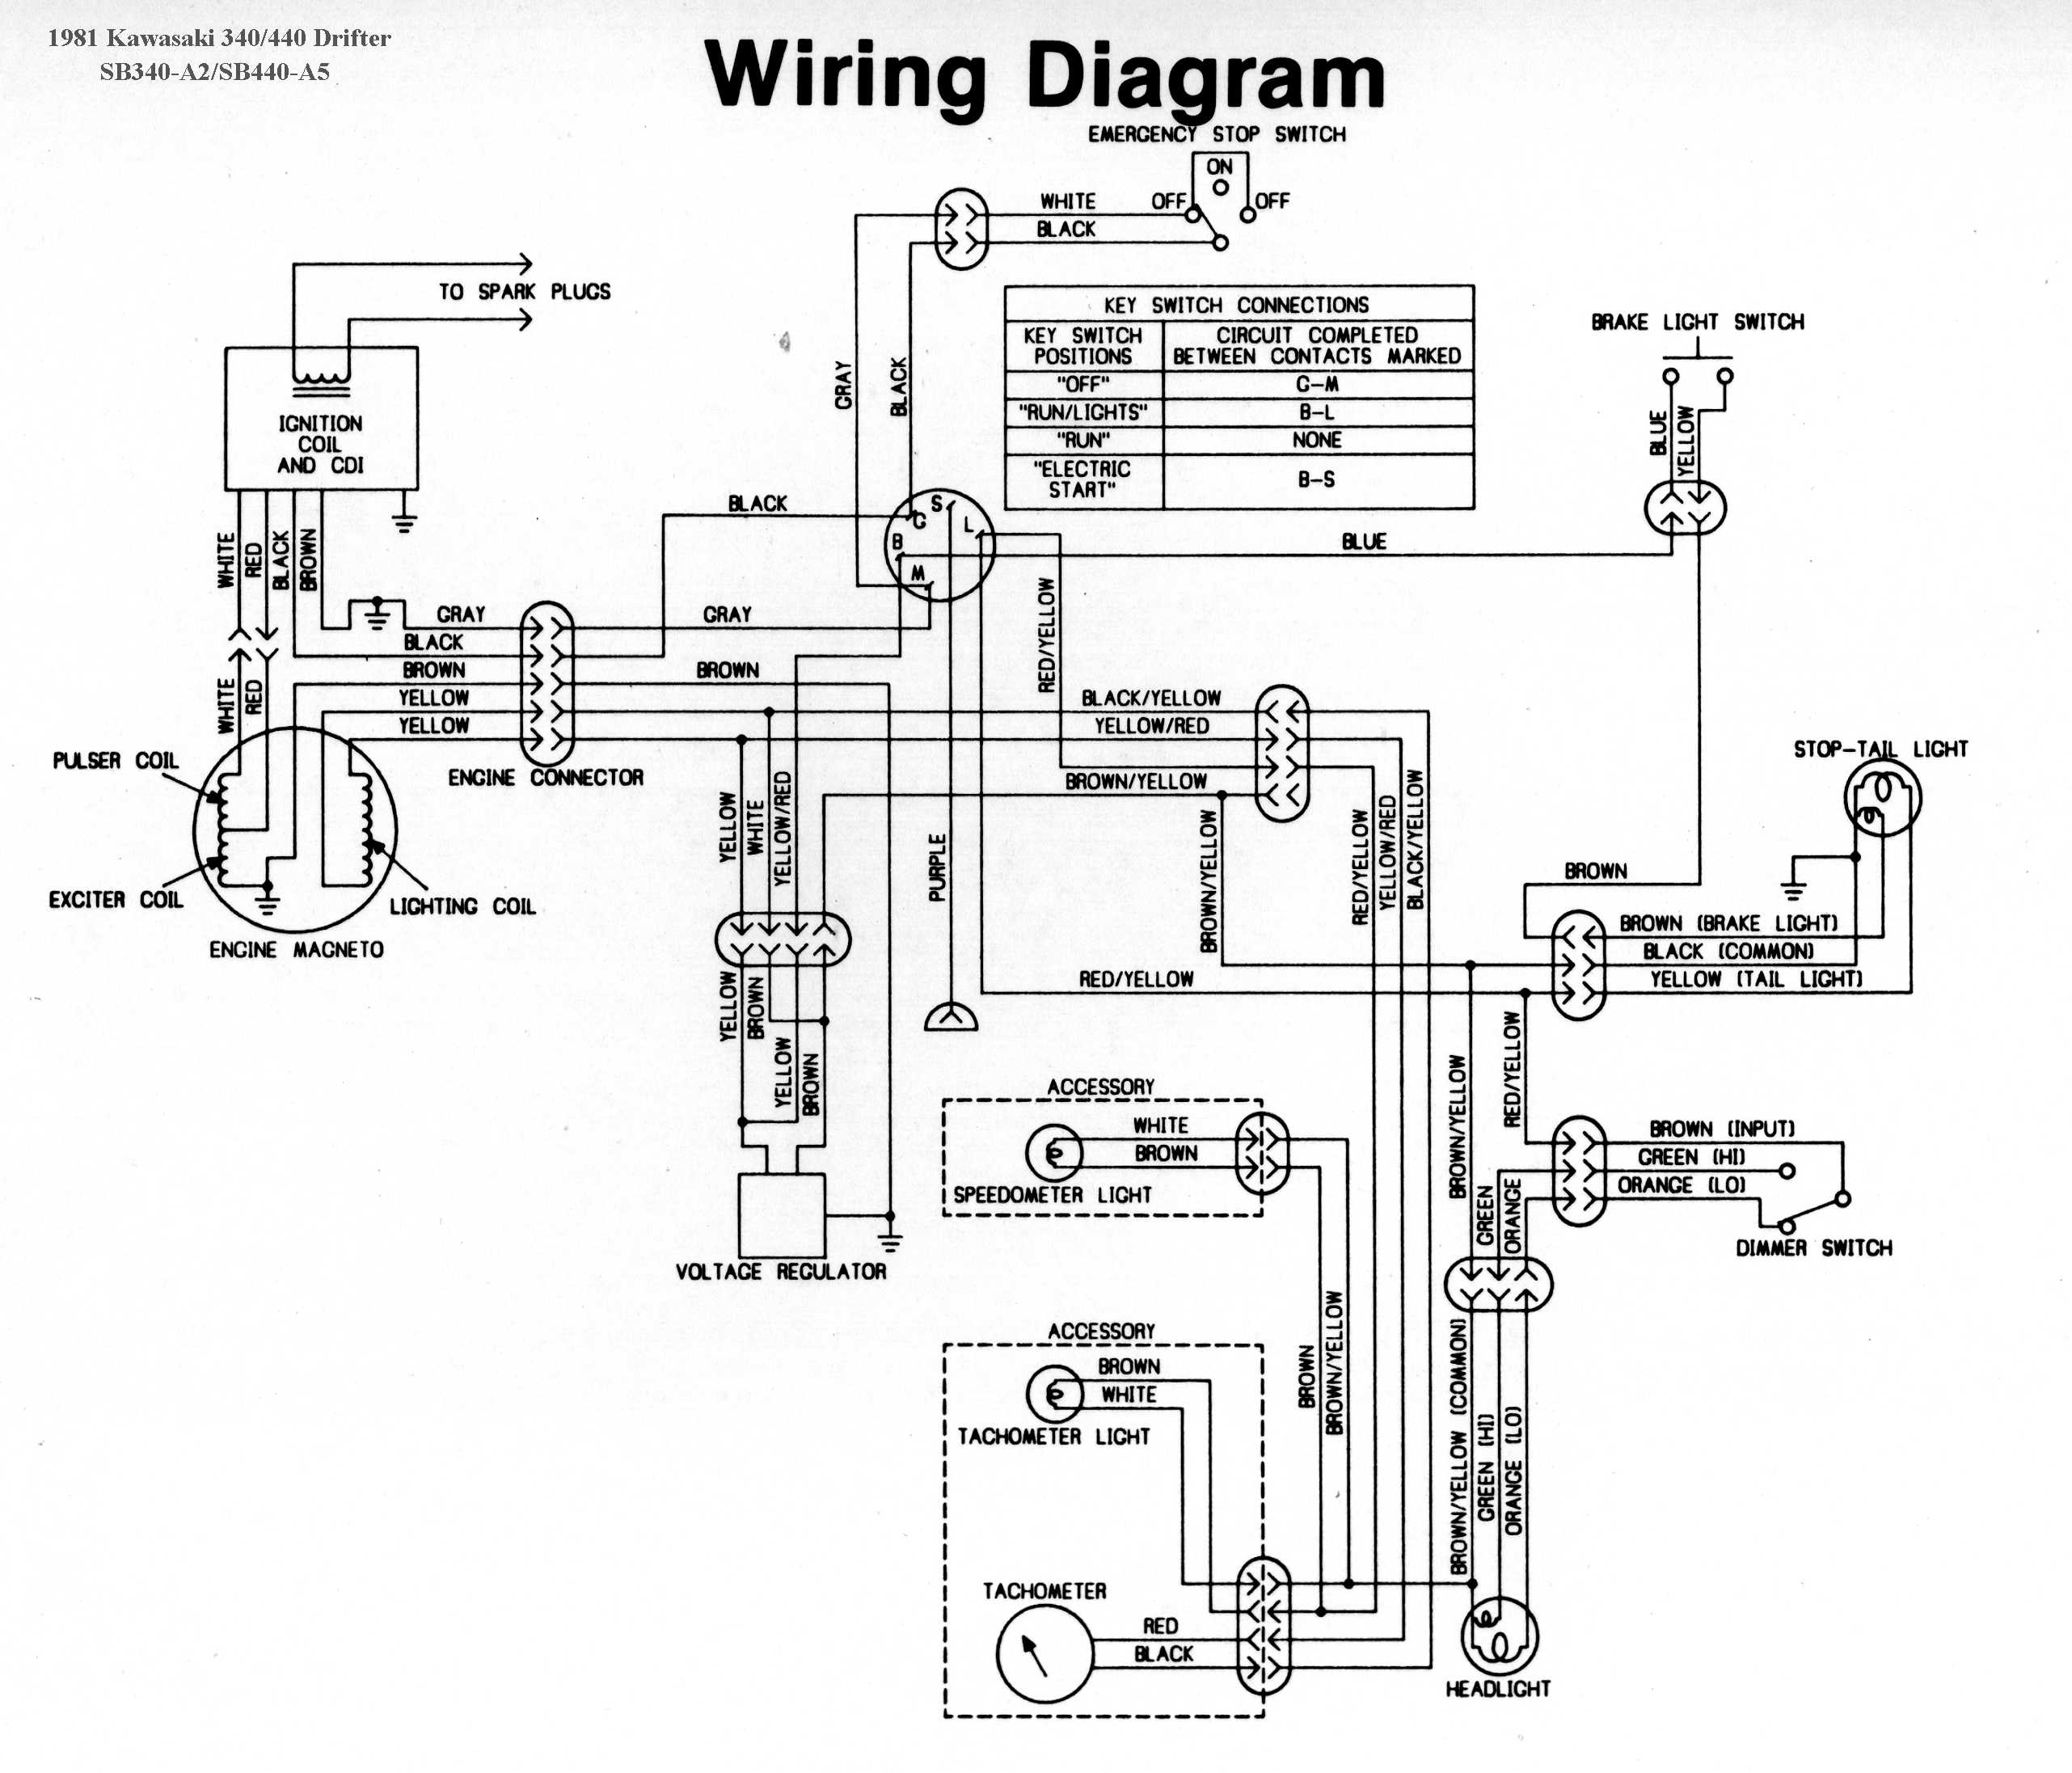 sb340a2 kawasaki mule kaf620 wiring diagram kawasaki free wiring  at eliteediting.co